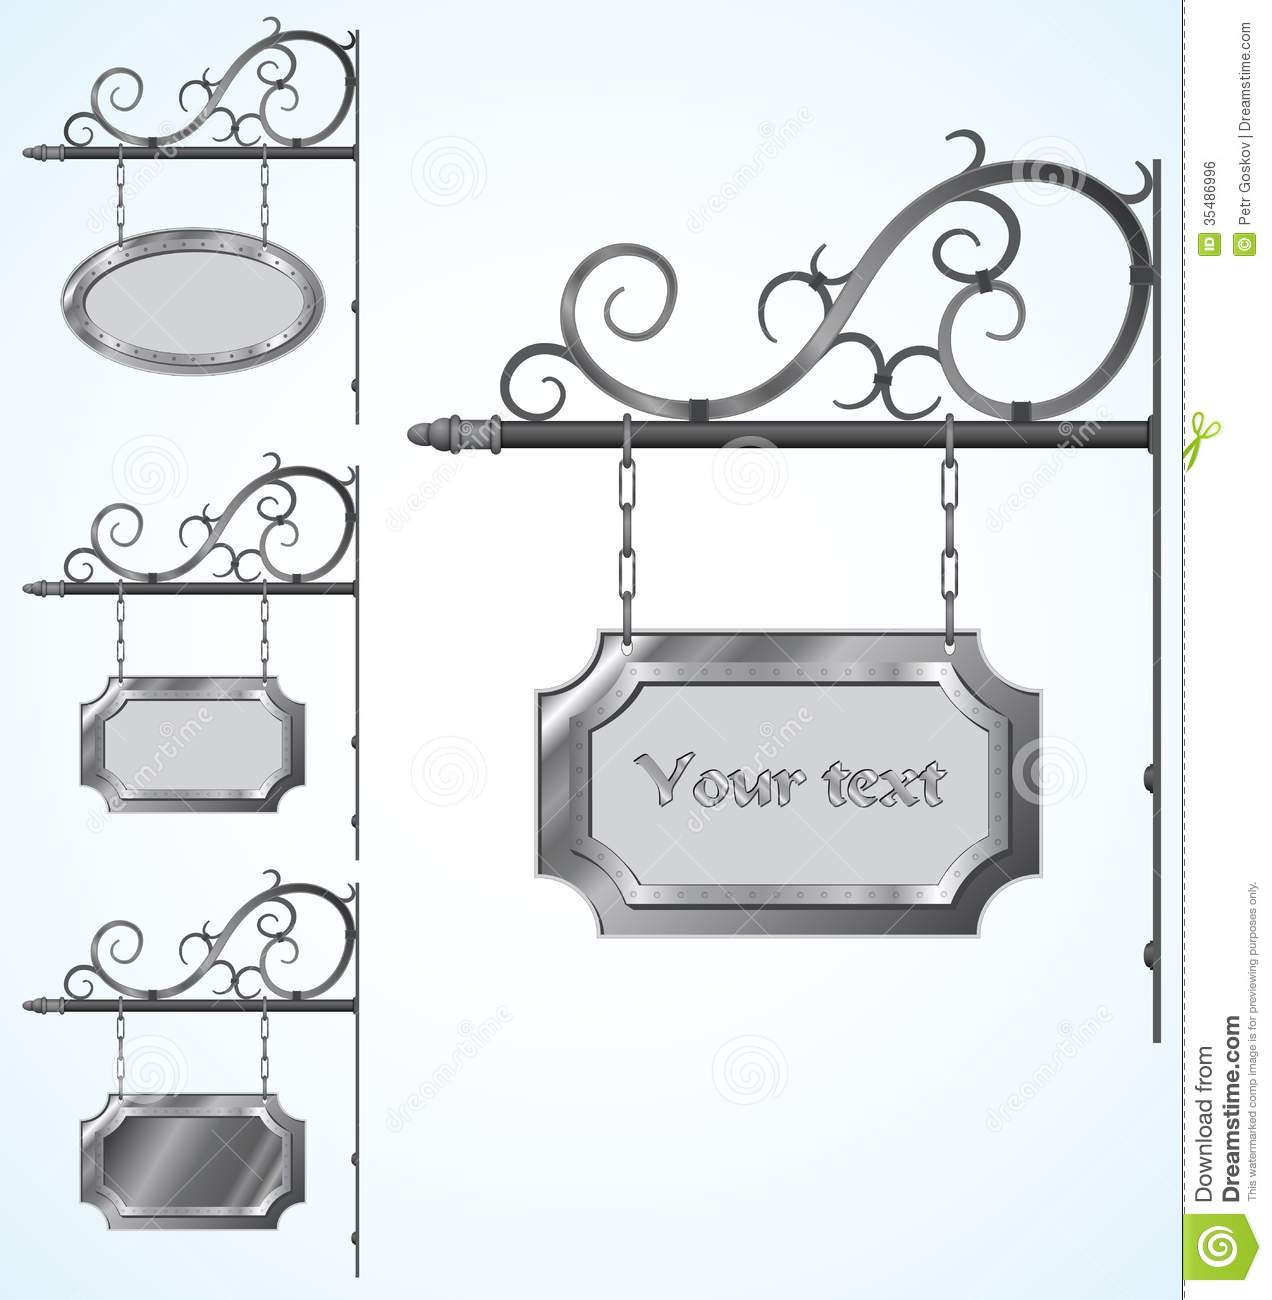 Wrought Iron Signs For Old Fashioned Design Royalty Free